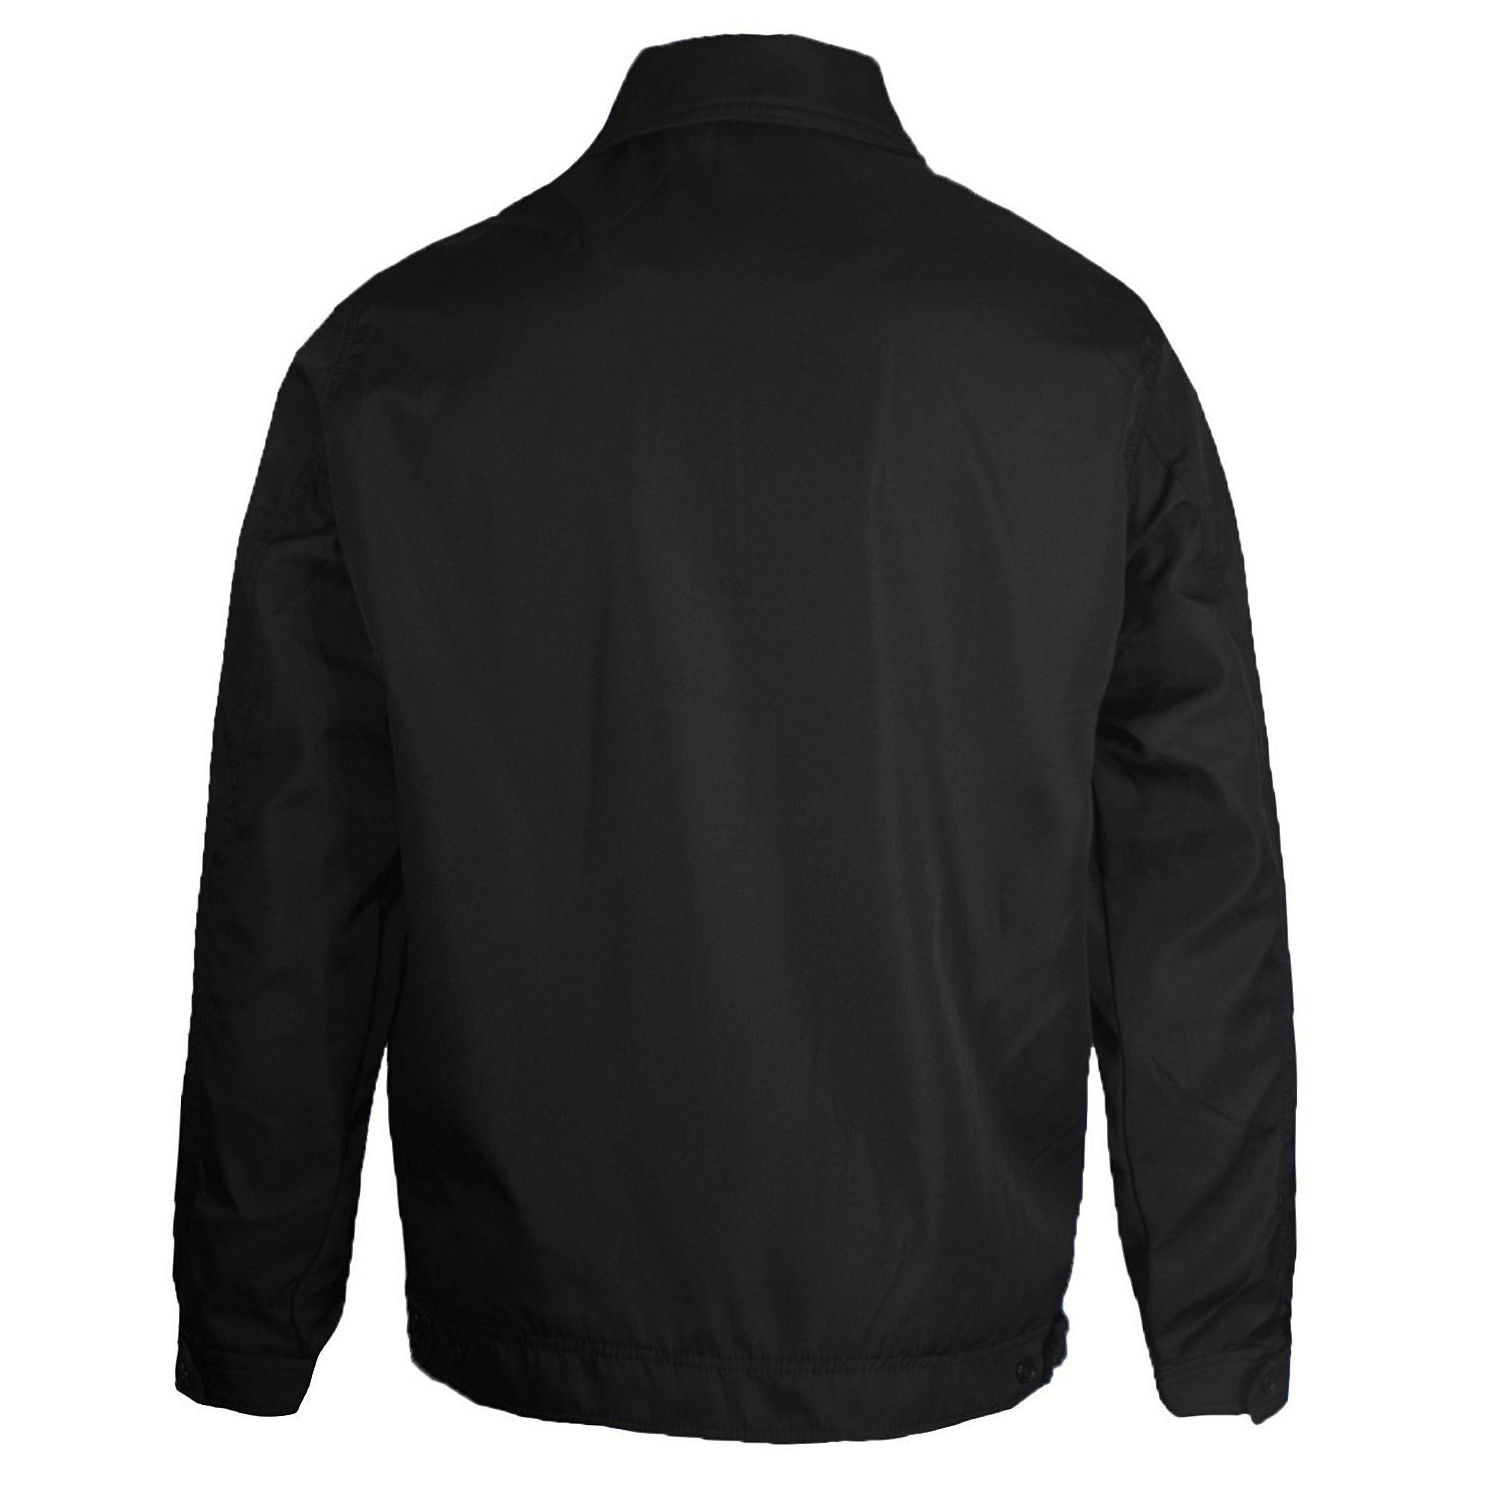 Men-039-s-Microfiber-Golf-Sport-Water-Resistant-Zip-Up-Windbreaker-Jacket-BENNY thumbnail 3